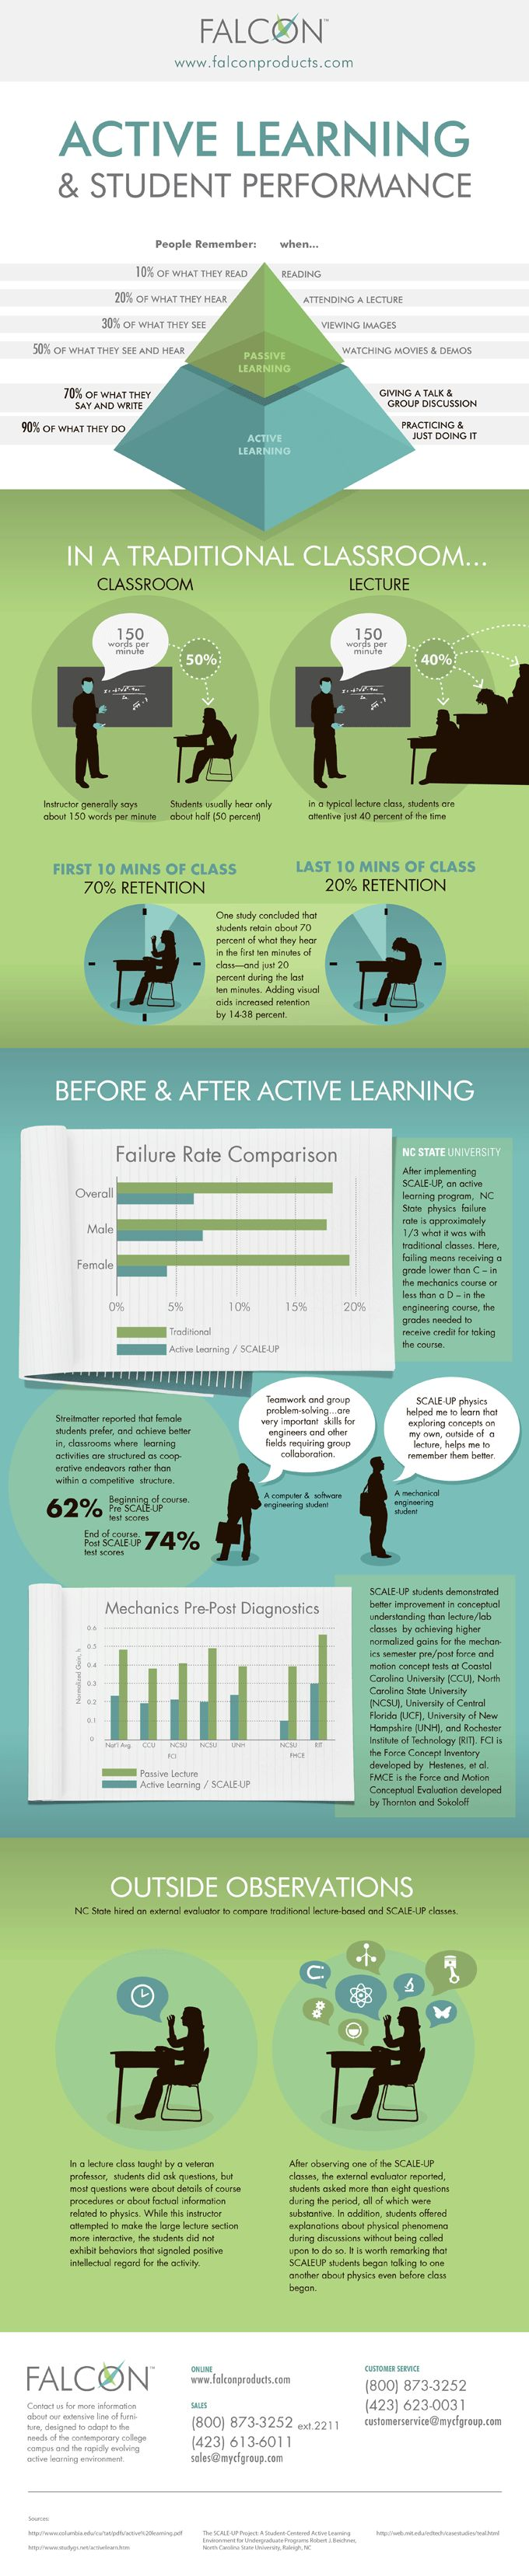 active learning environment | modern classroom and the rapidly evolving active…